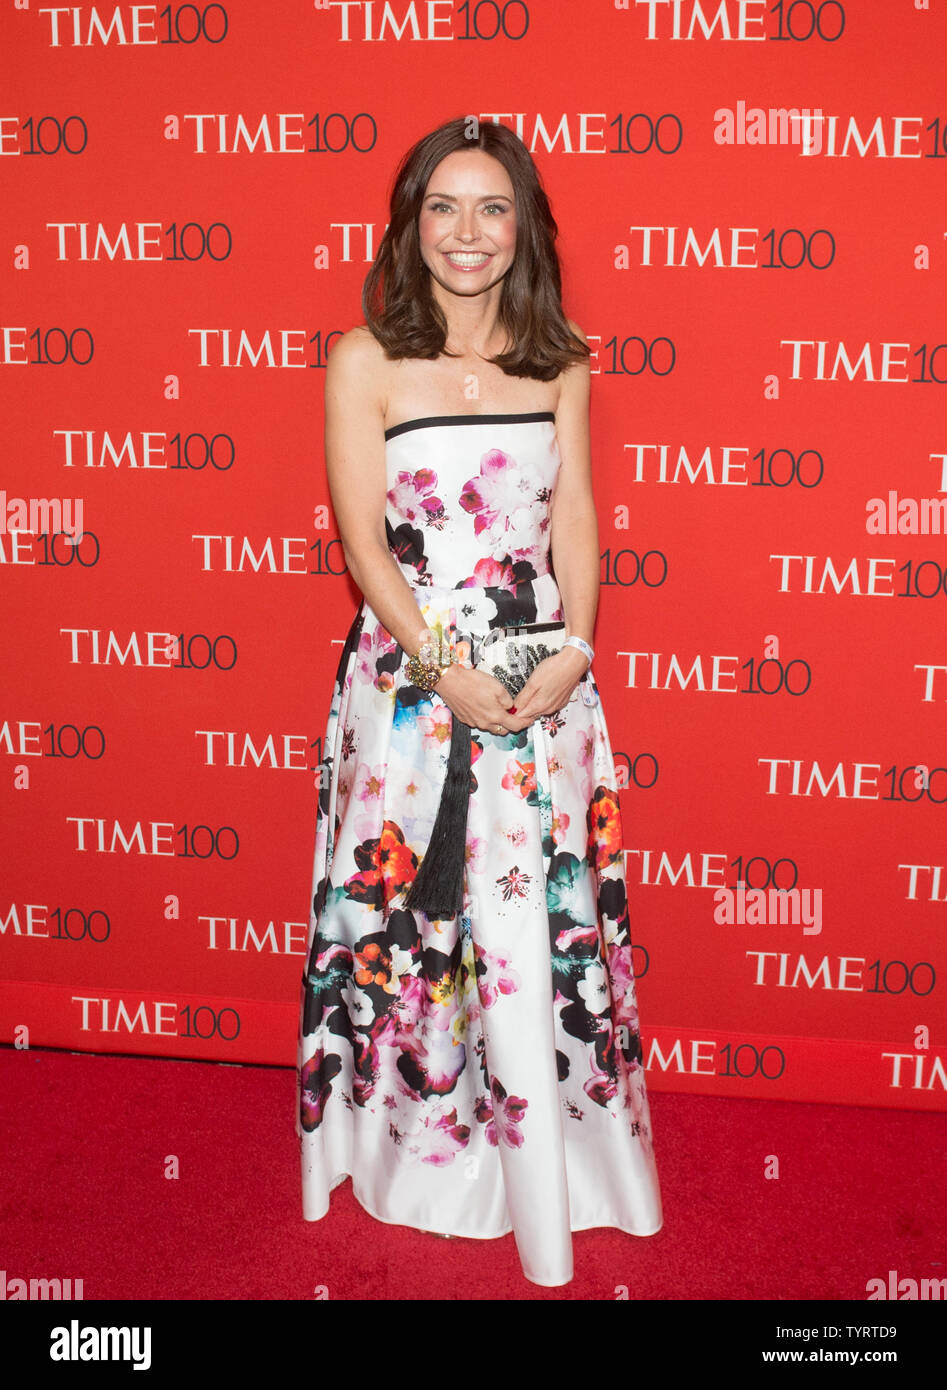 Kirsten Green arrives on the red carpet at the TIME 100 Gala at